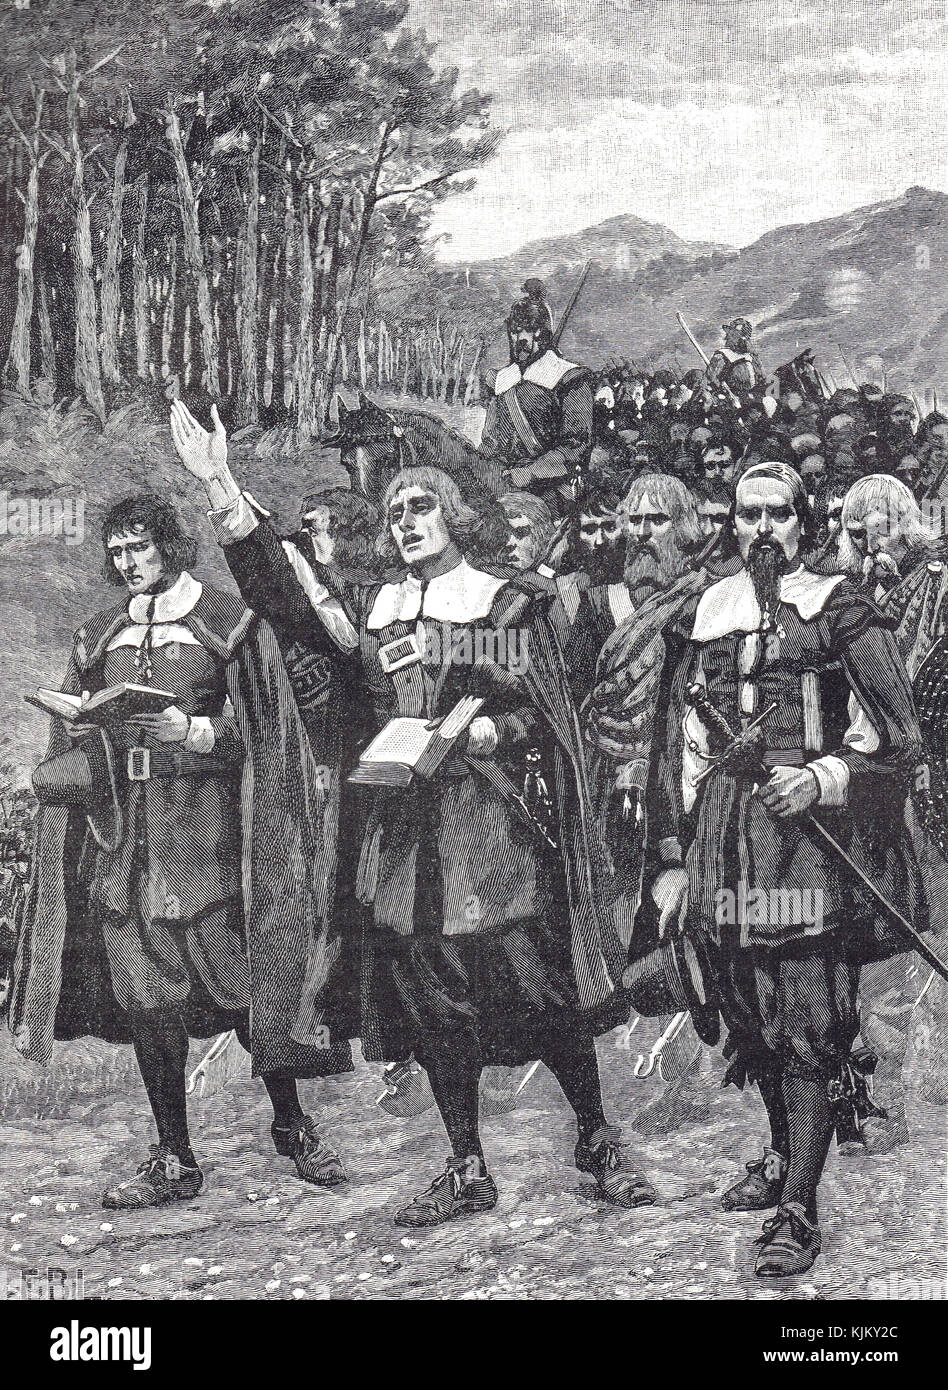 Scottish Covenanters army invasion of England, 20 August 1640, Second Bishops' War - Stock Image